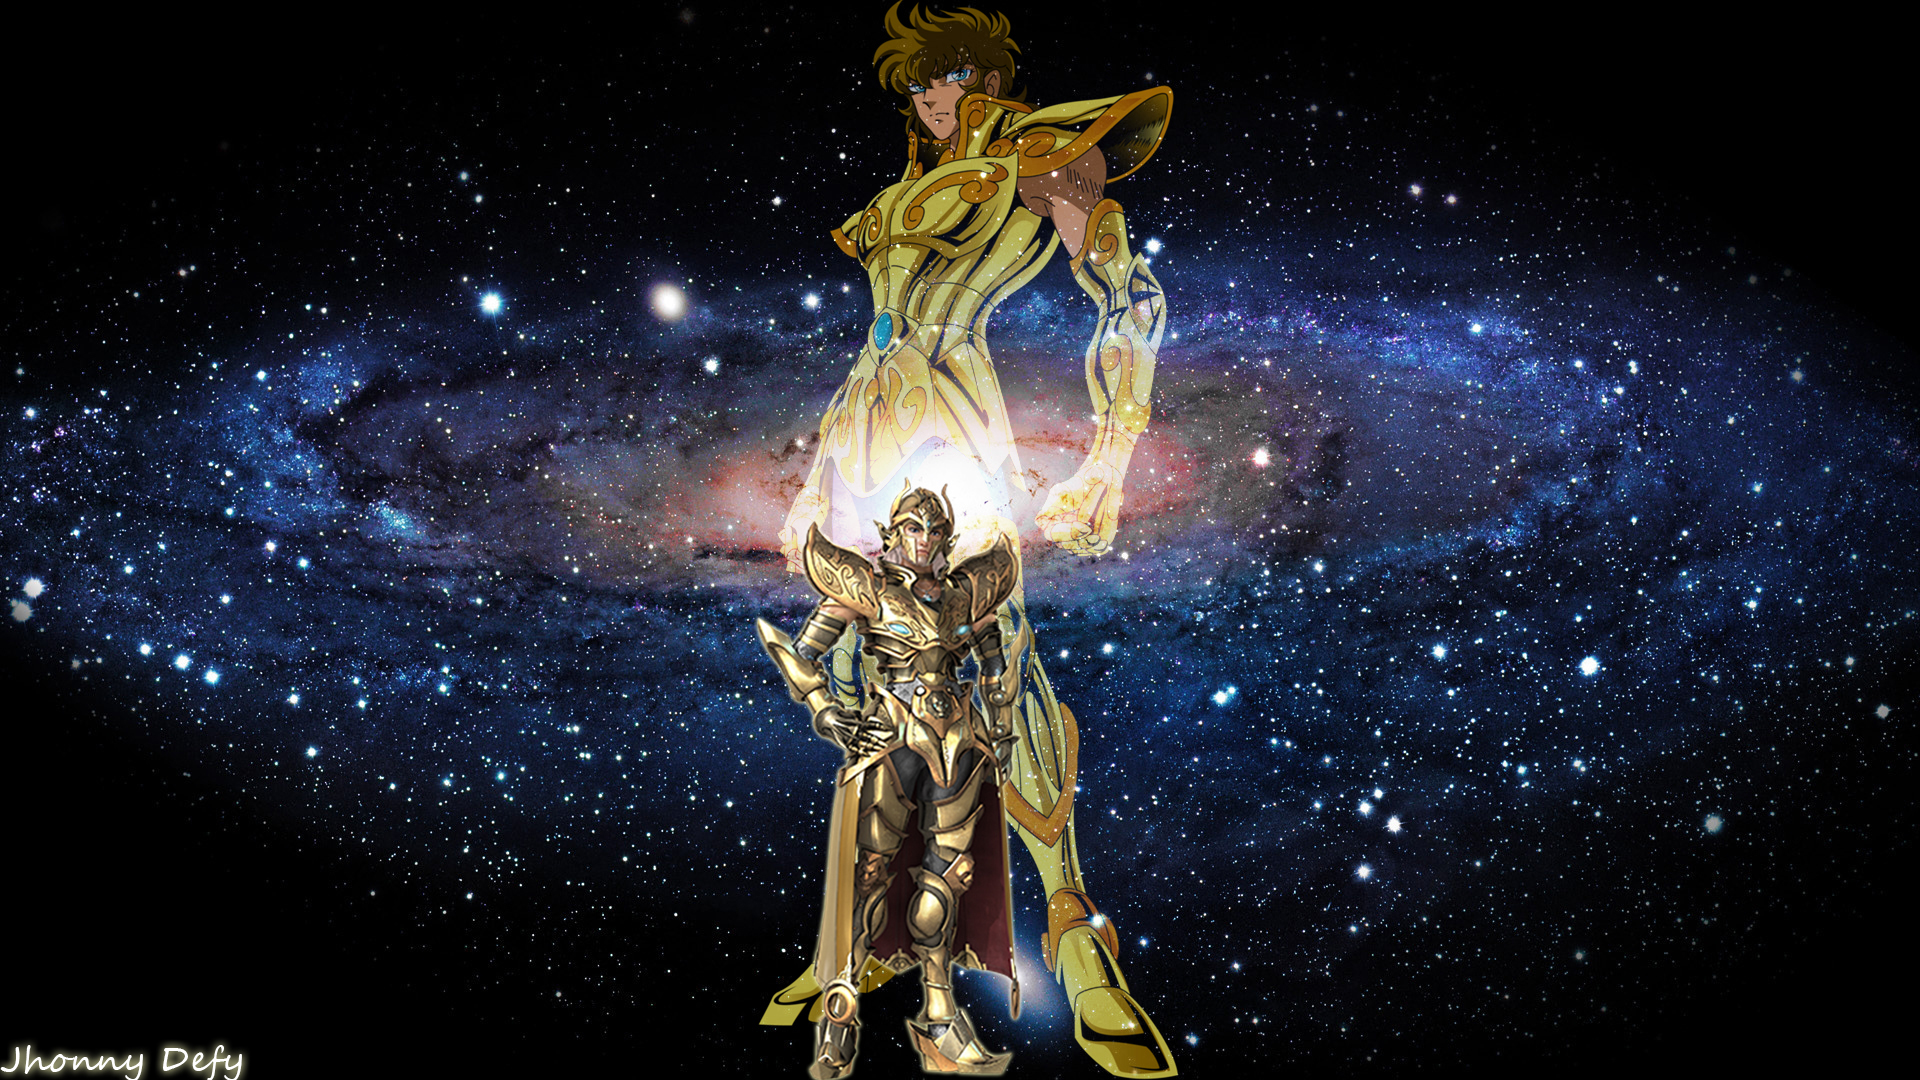 saint seiya wallpaper desktop